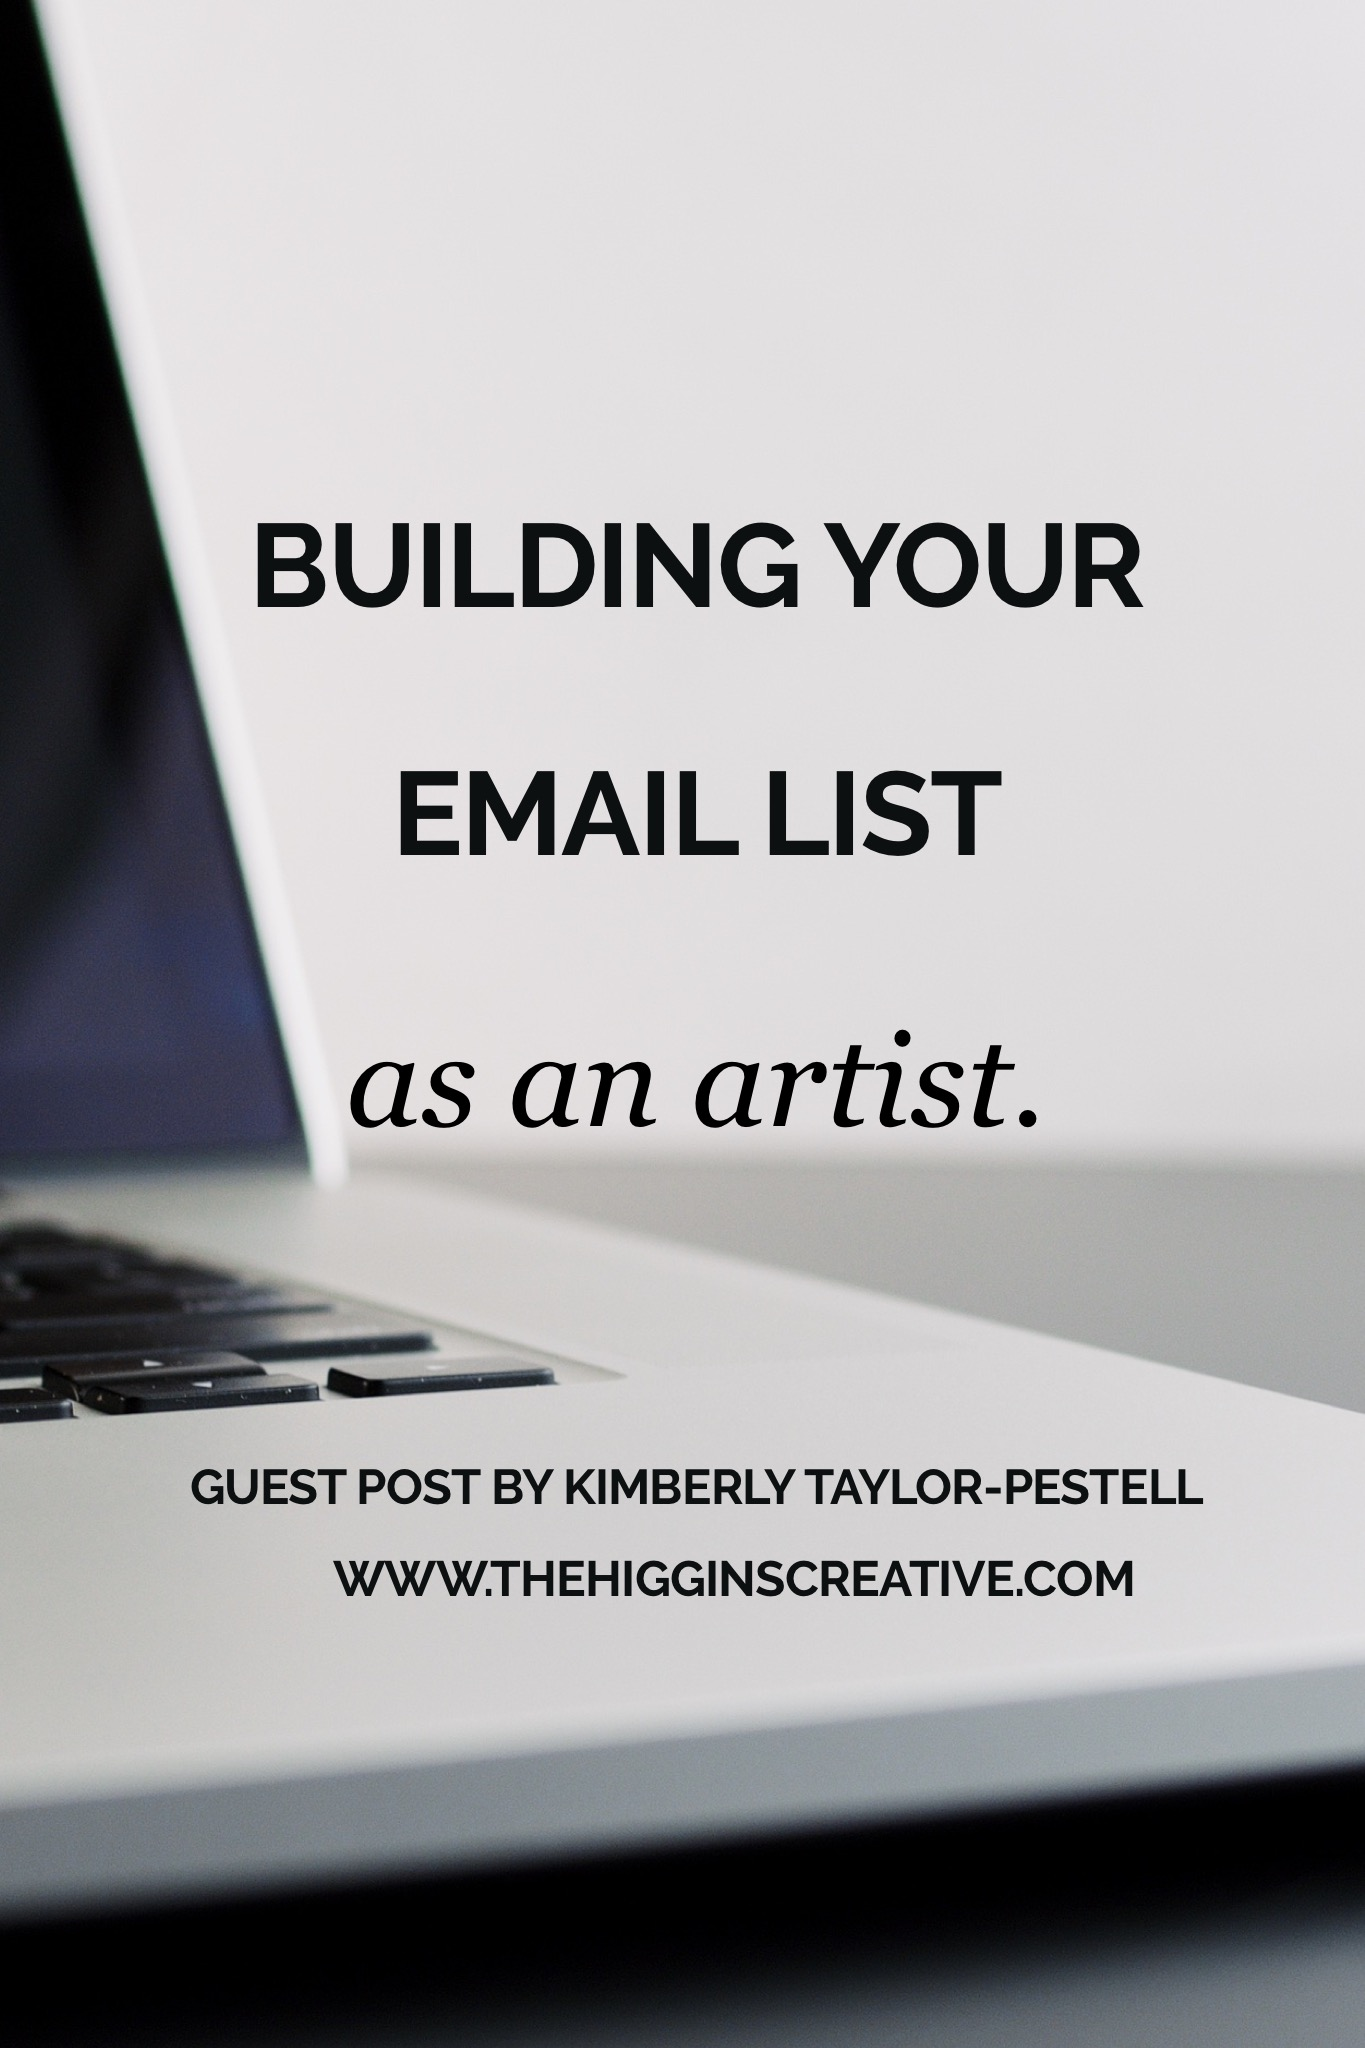 As an artist, blogger and letter-writing enthusiast, communicating in meaningful ways is at the forefront of my mind when engaging in person, over social media or through email. Find out how to build and grow your email list as a maker and artist. For small businesses and boss babes trying to market their art online